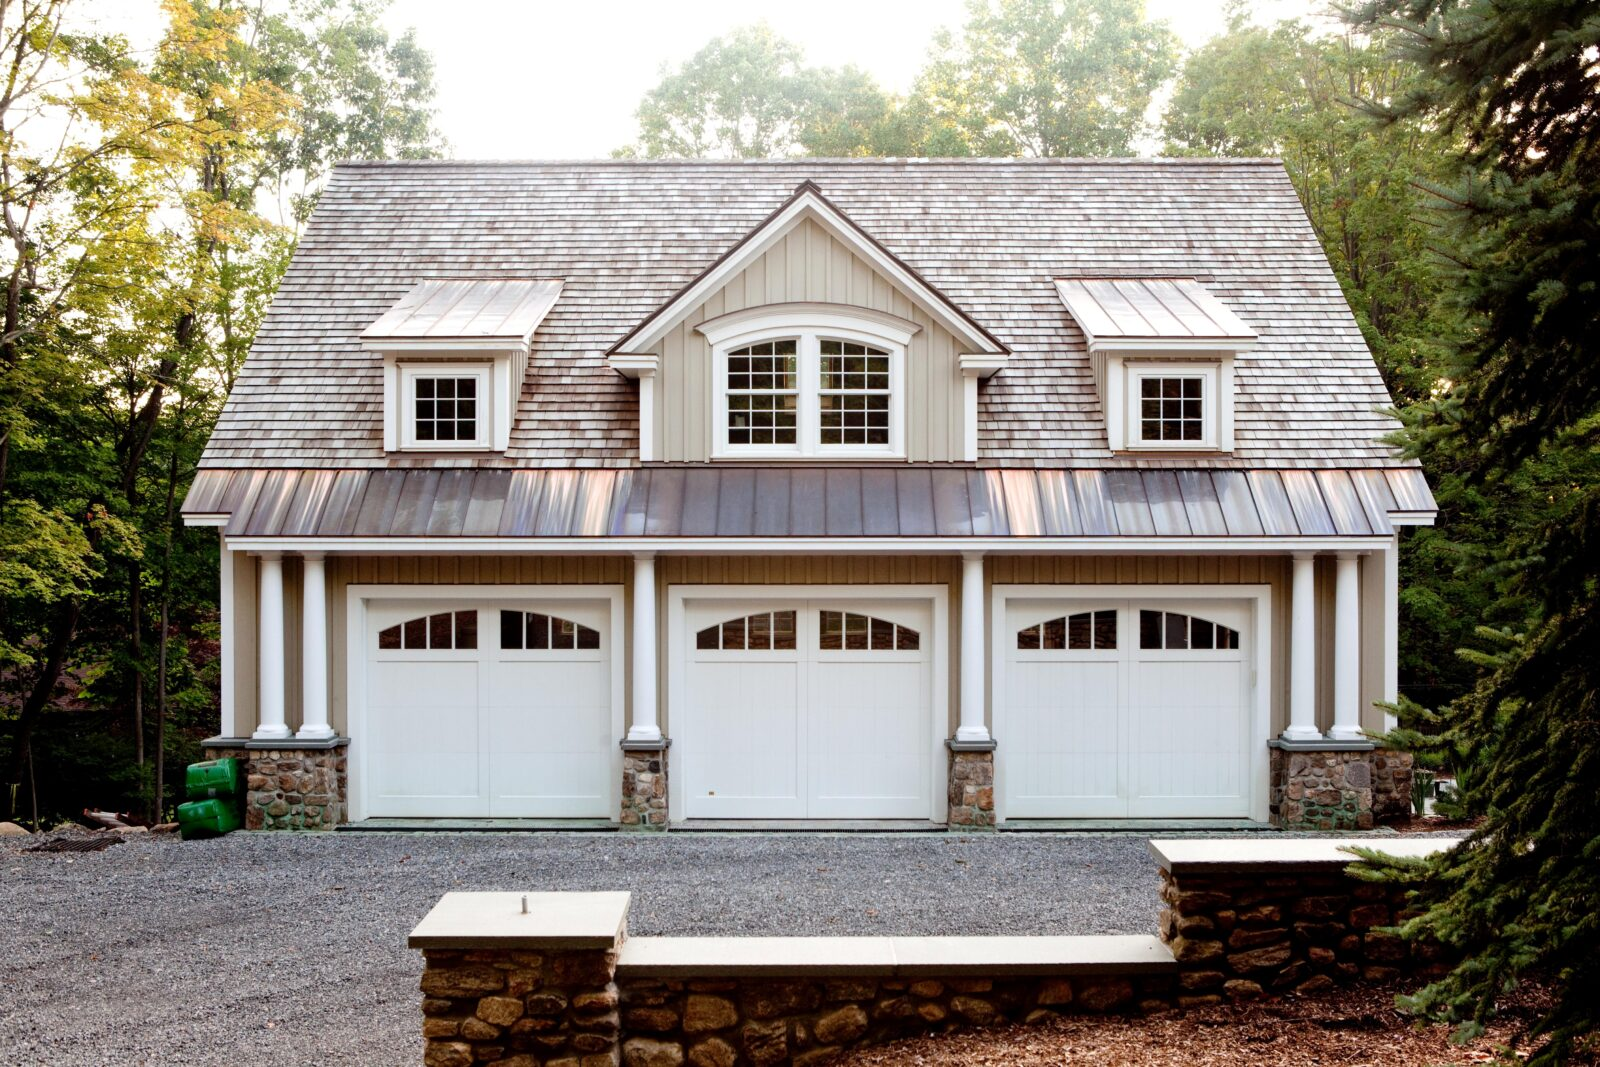 Barn carriage house joy studio design gallery best design for Garage style homes